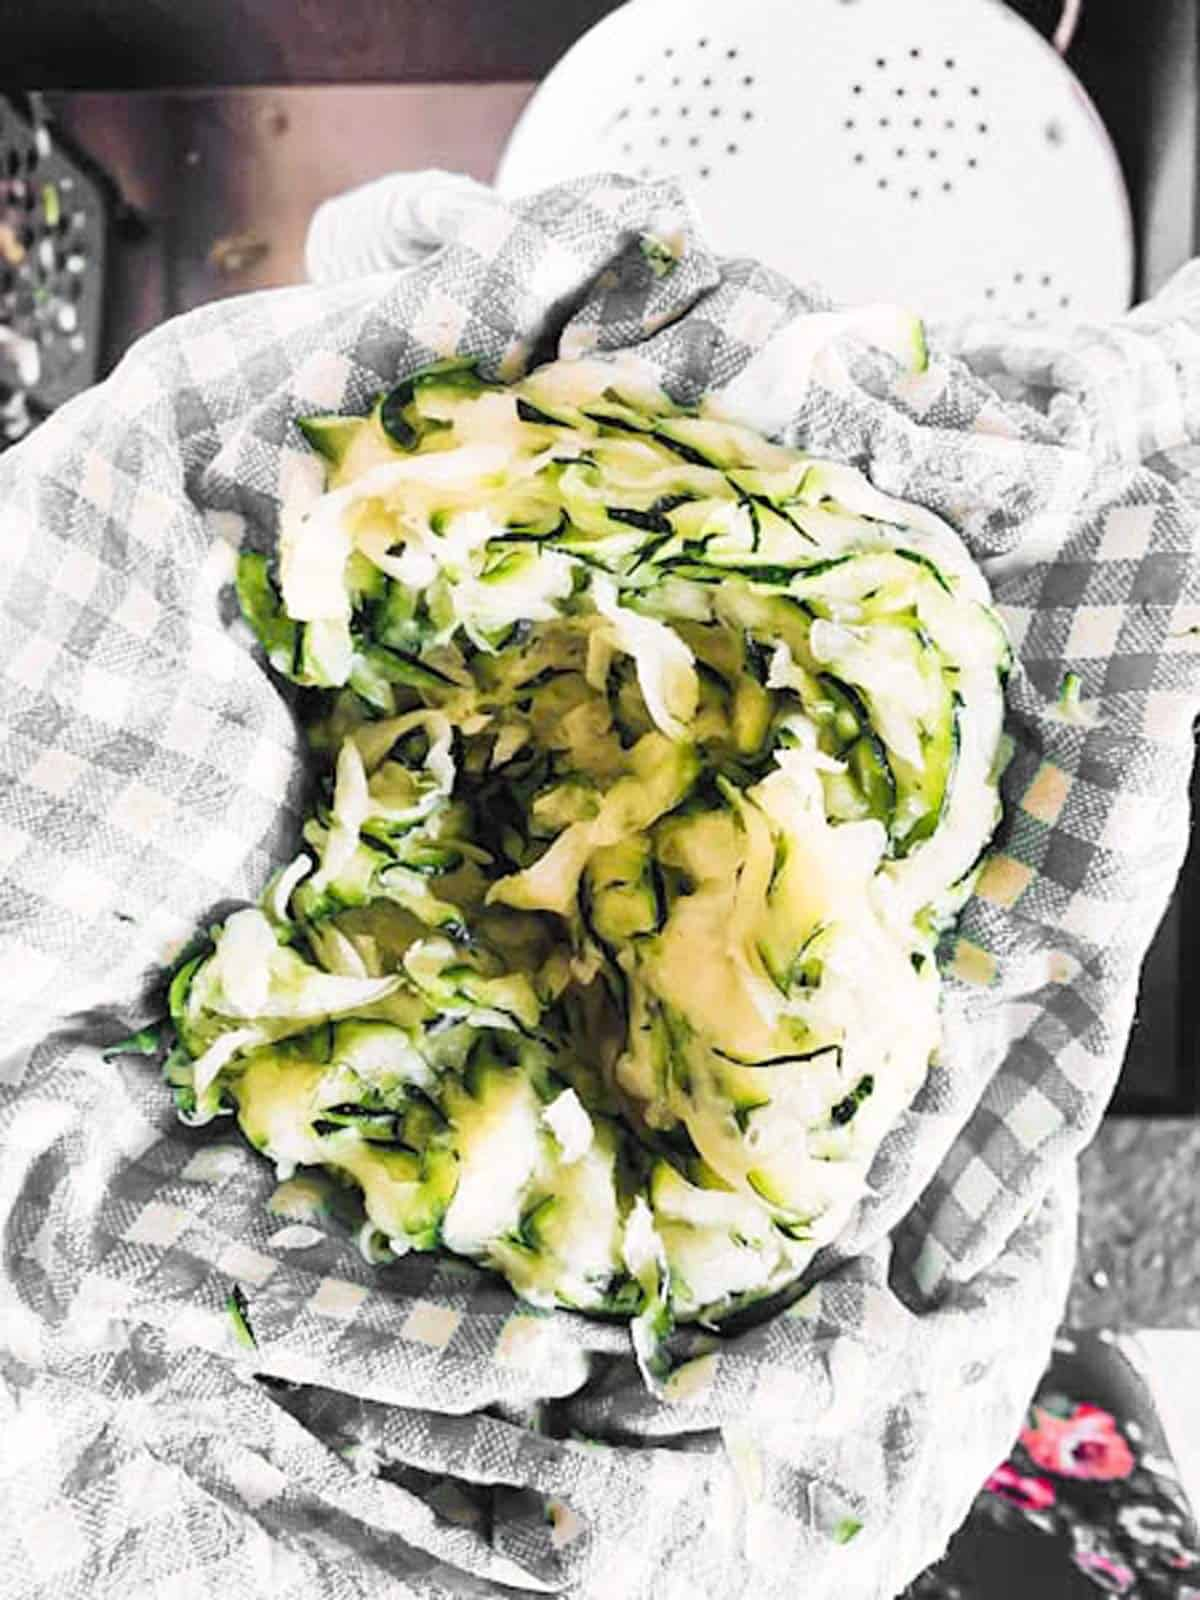 shredded zucchini in tea towel